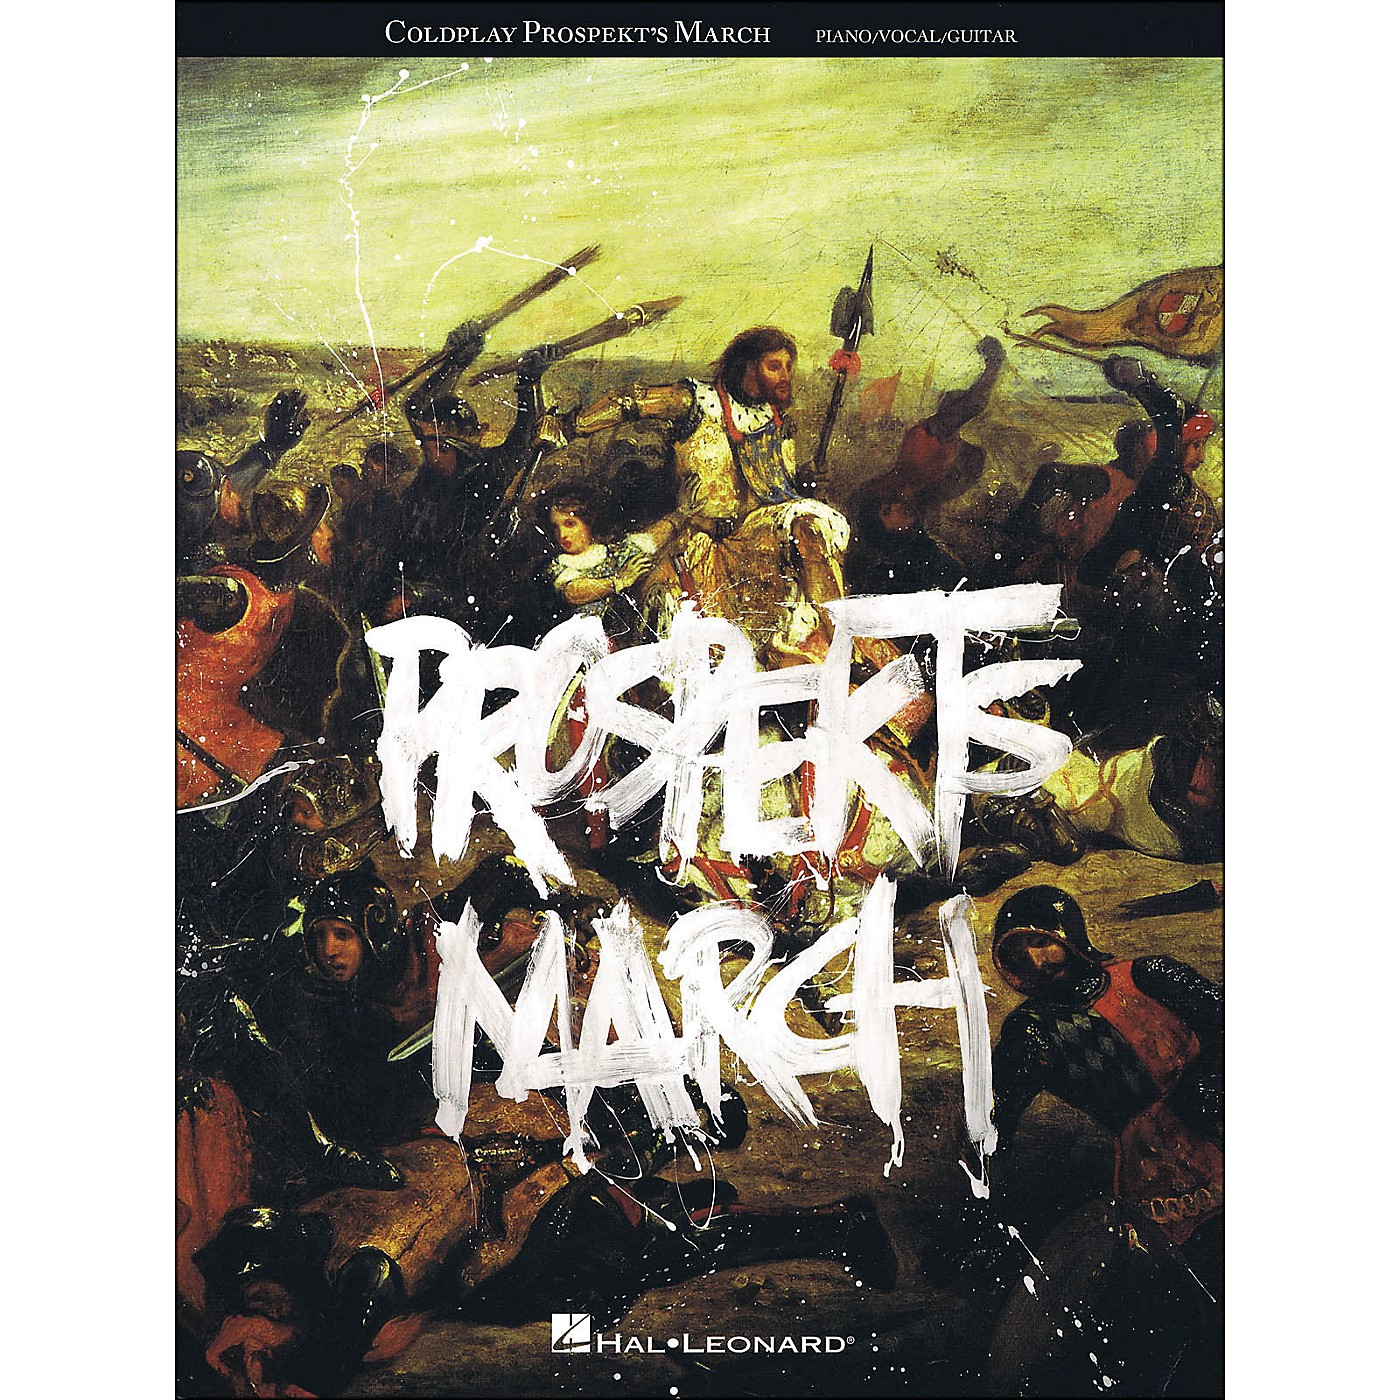 Hal Leonard Coldplay - Prospekts March arranged for piano, vocal, and guitar (P/V/G) thumbnail